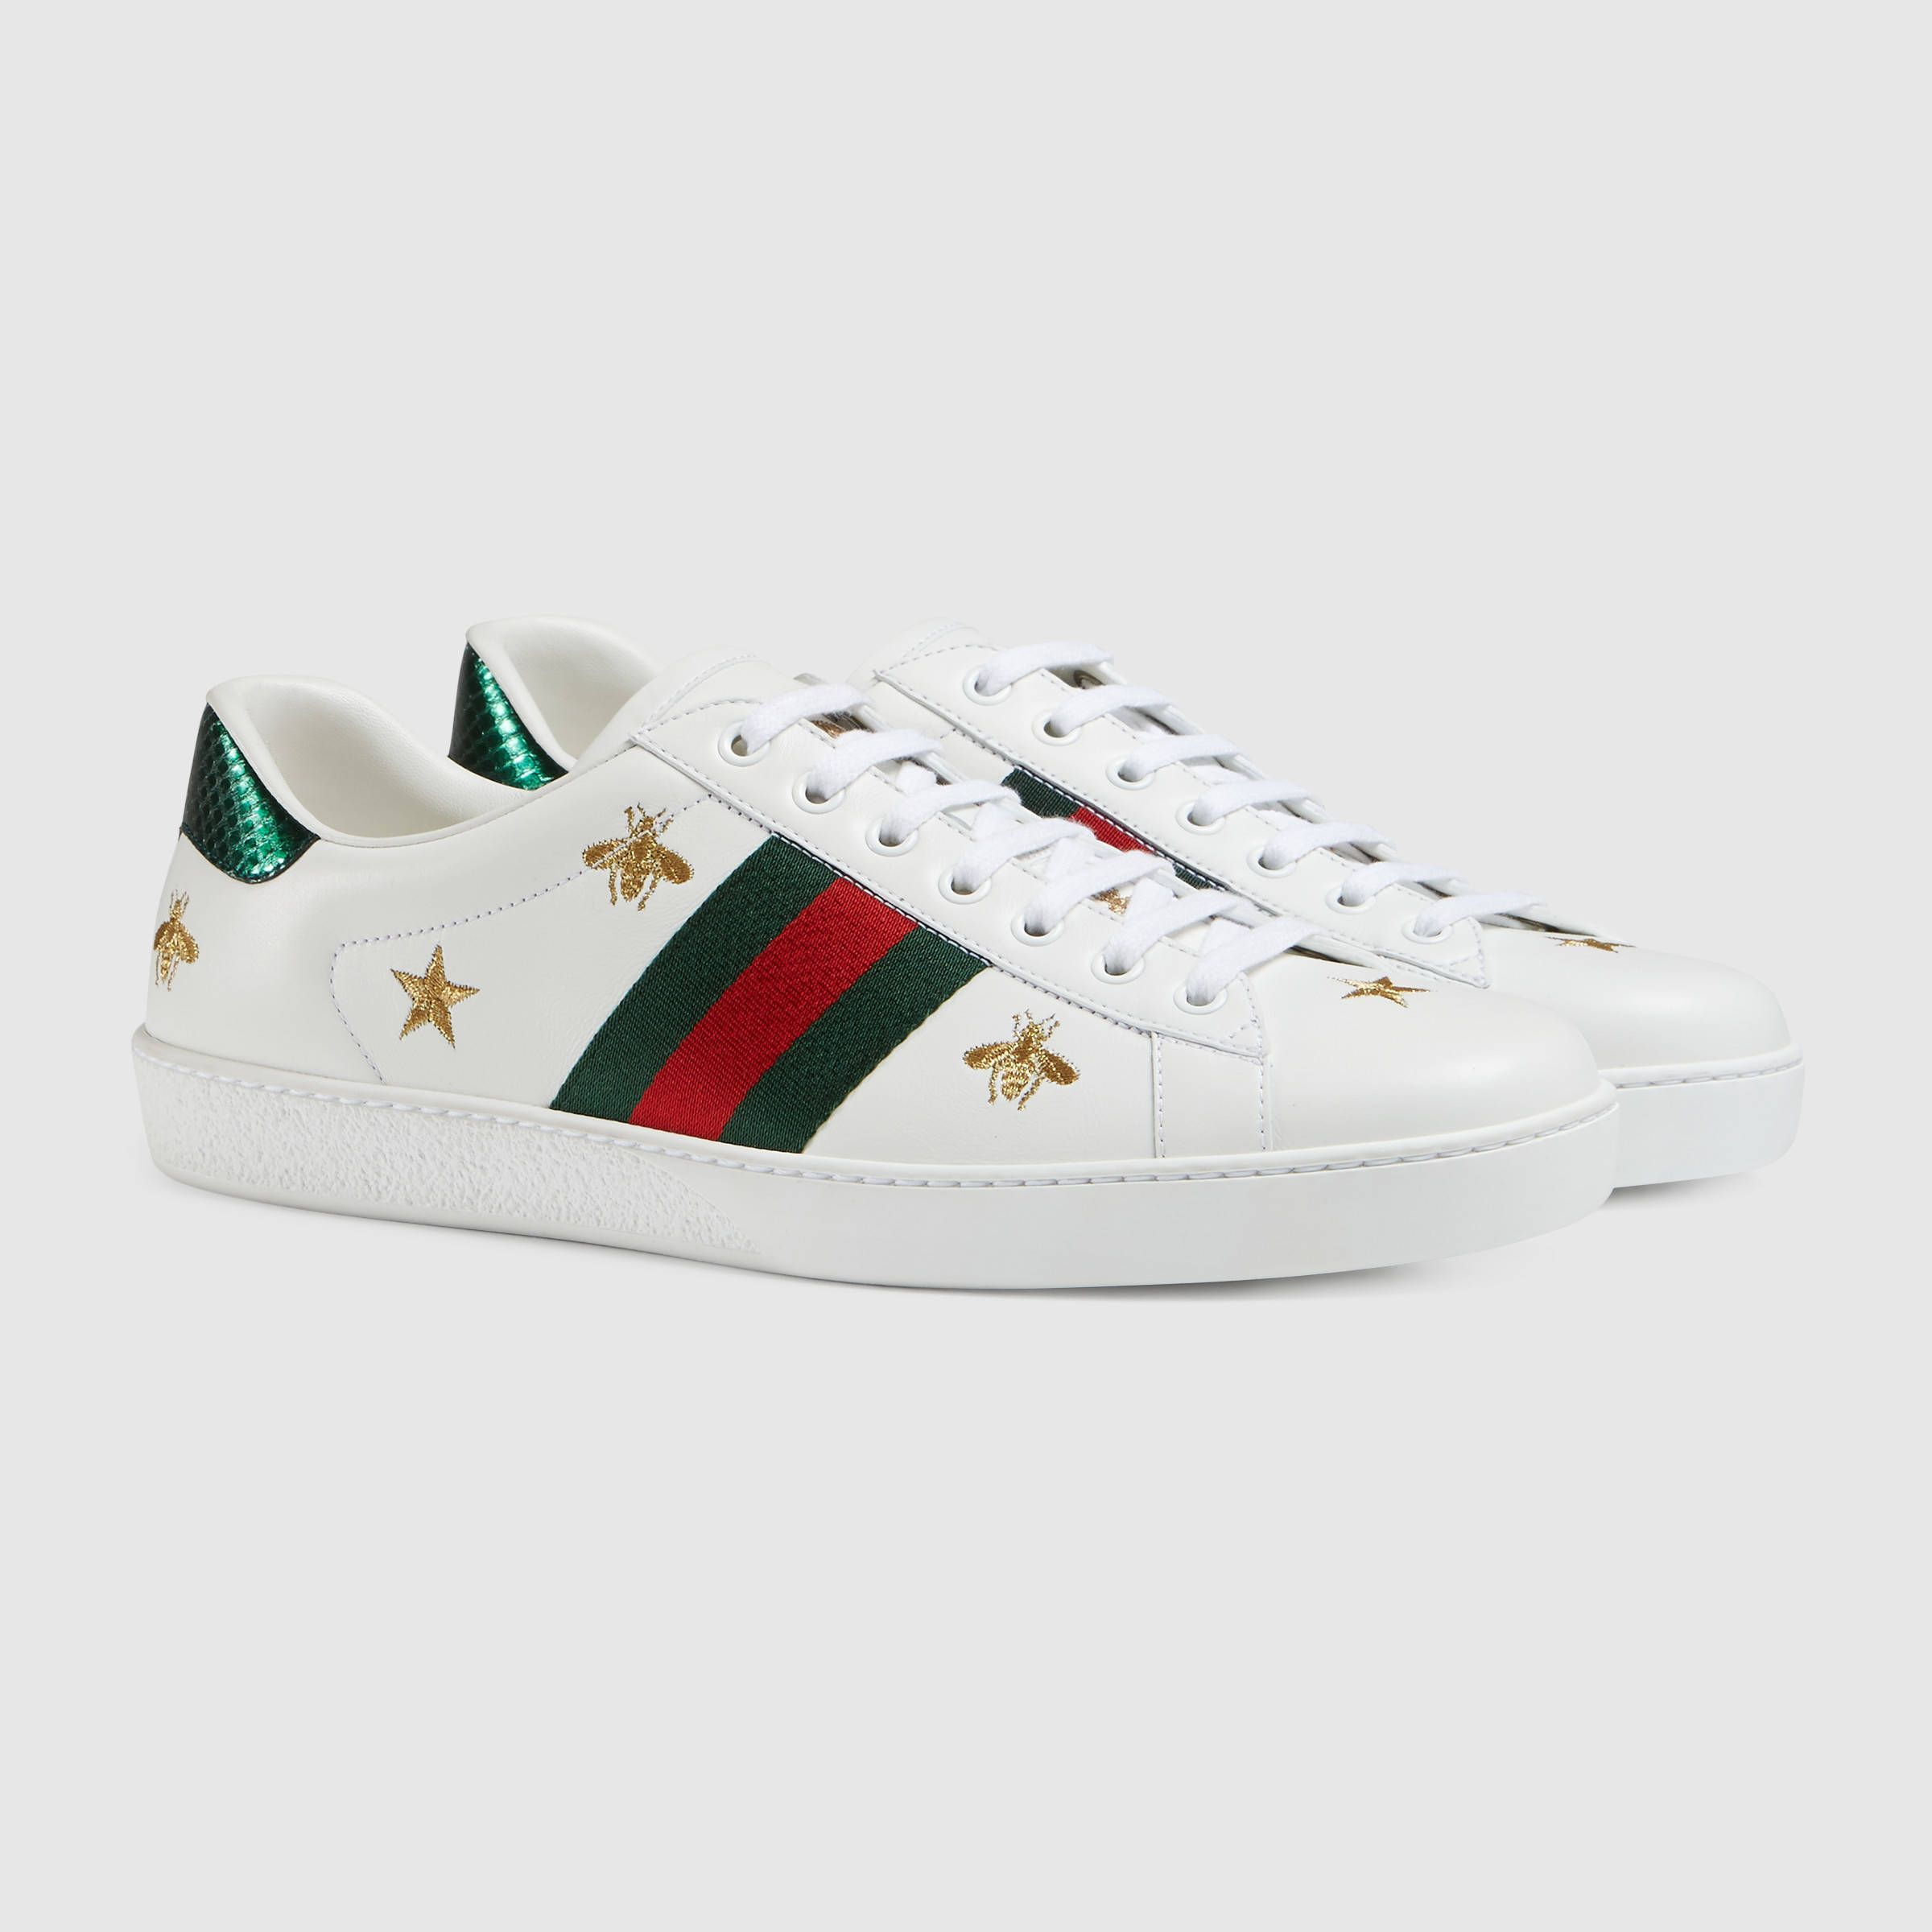 646c18447cb8a Gucci Ace embroidered sneaker Detail 2